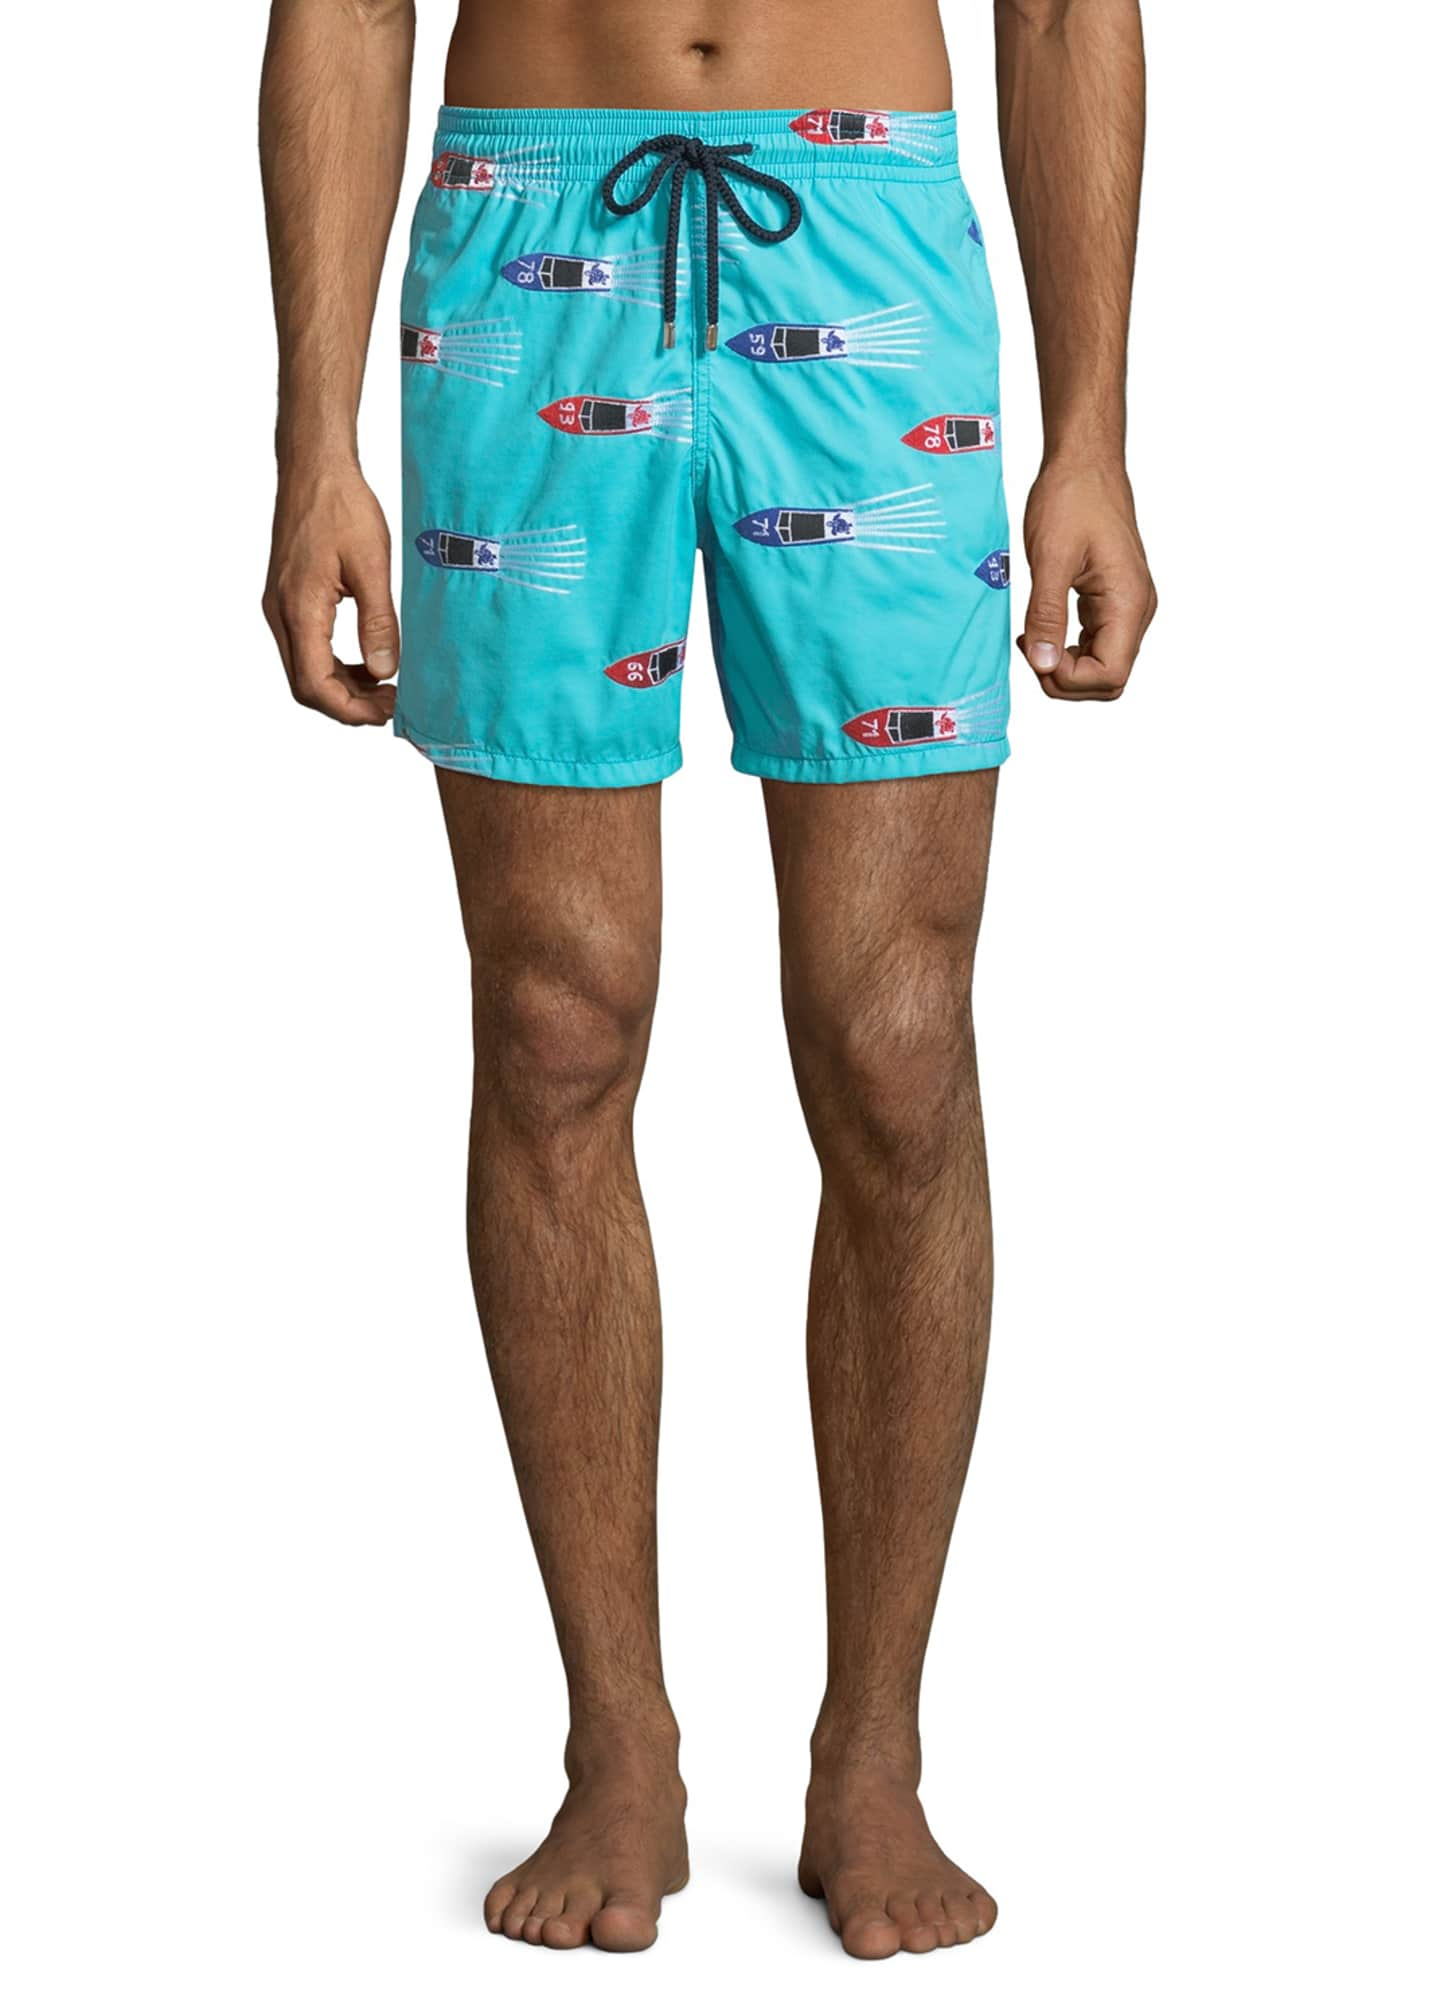 Image 1 of 3: Men's Mistral Graphic Print Swim Trunks